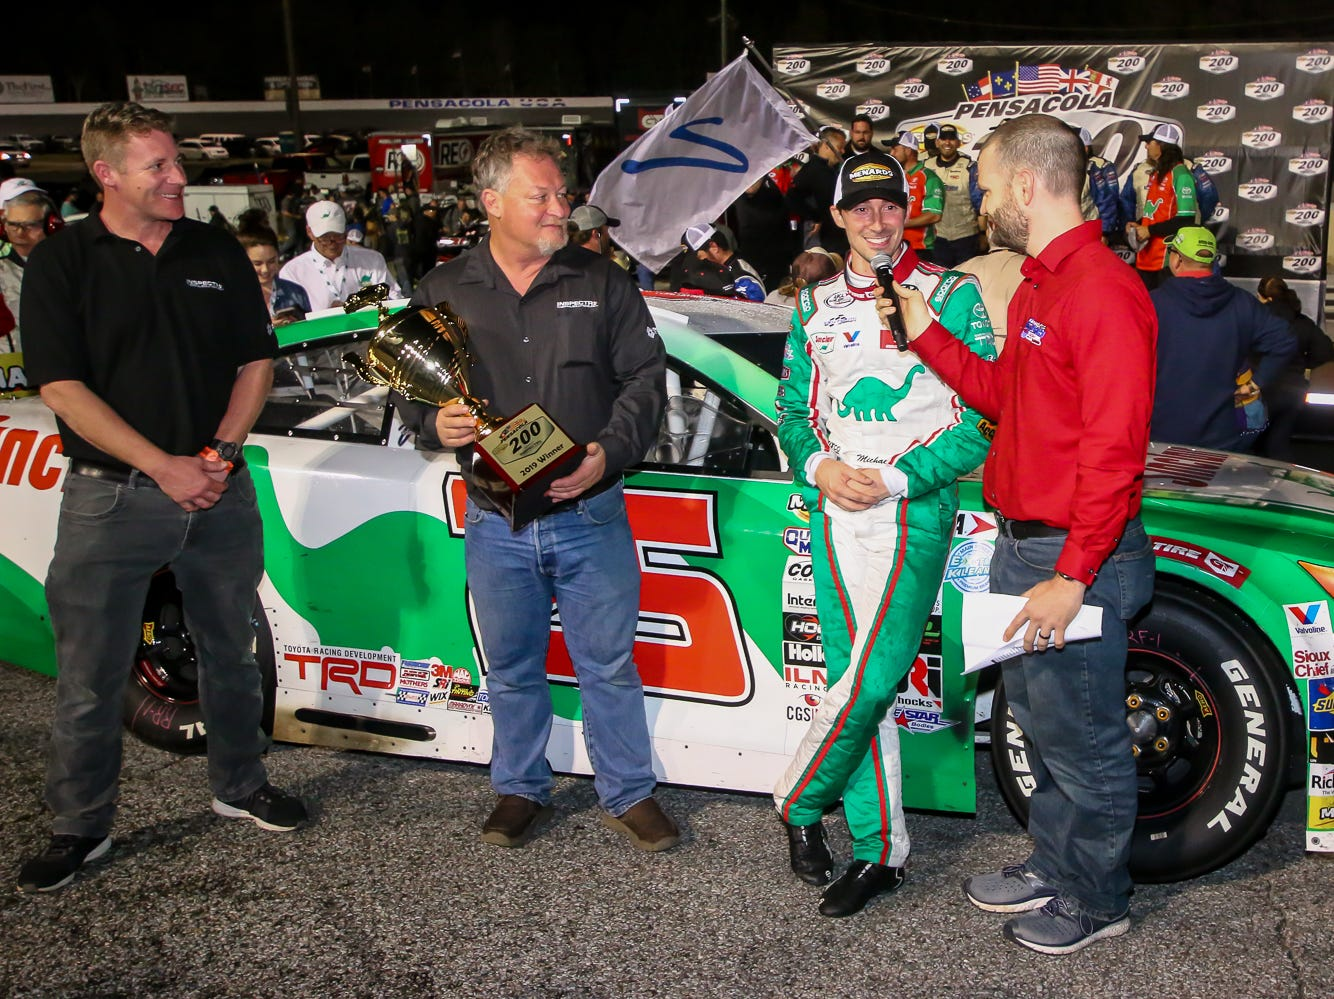 Michael Self (25), of Salt Lake City, is interviewed after winning the ARCA Pensacola 200 race presented by Inspectra Thermal Solutions on Saturday, March 9, 2019, at Five Flags Speedway. He started the race in the number two position.